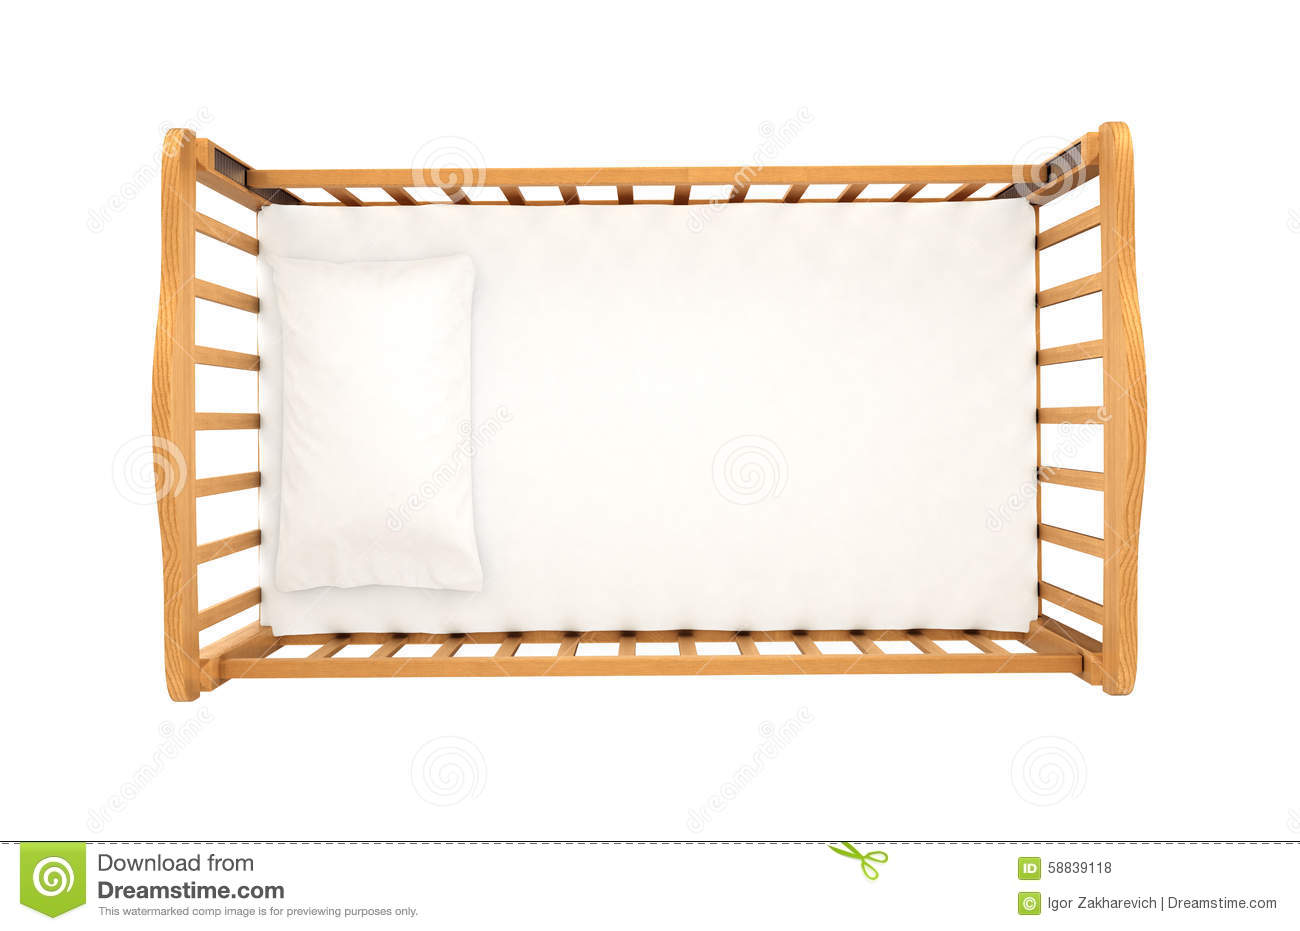 Wooden Cradle For Baby With Pillow Isolated On White